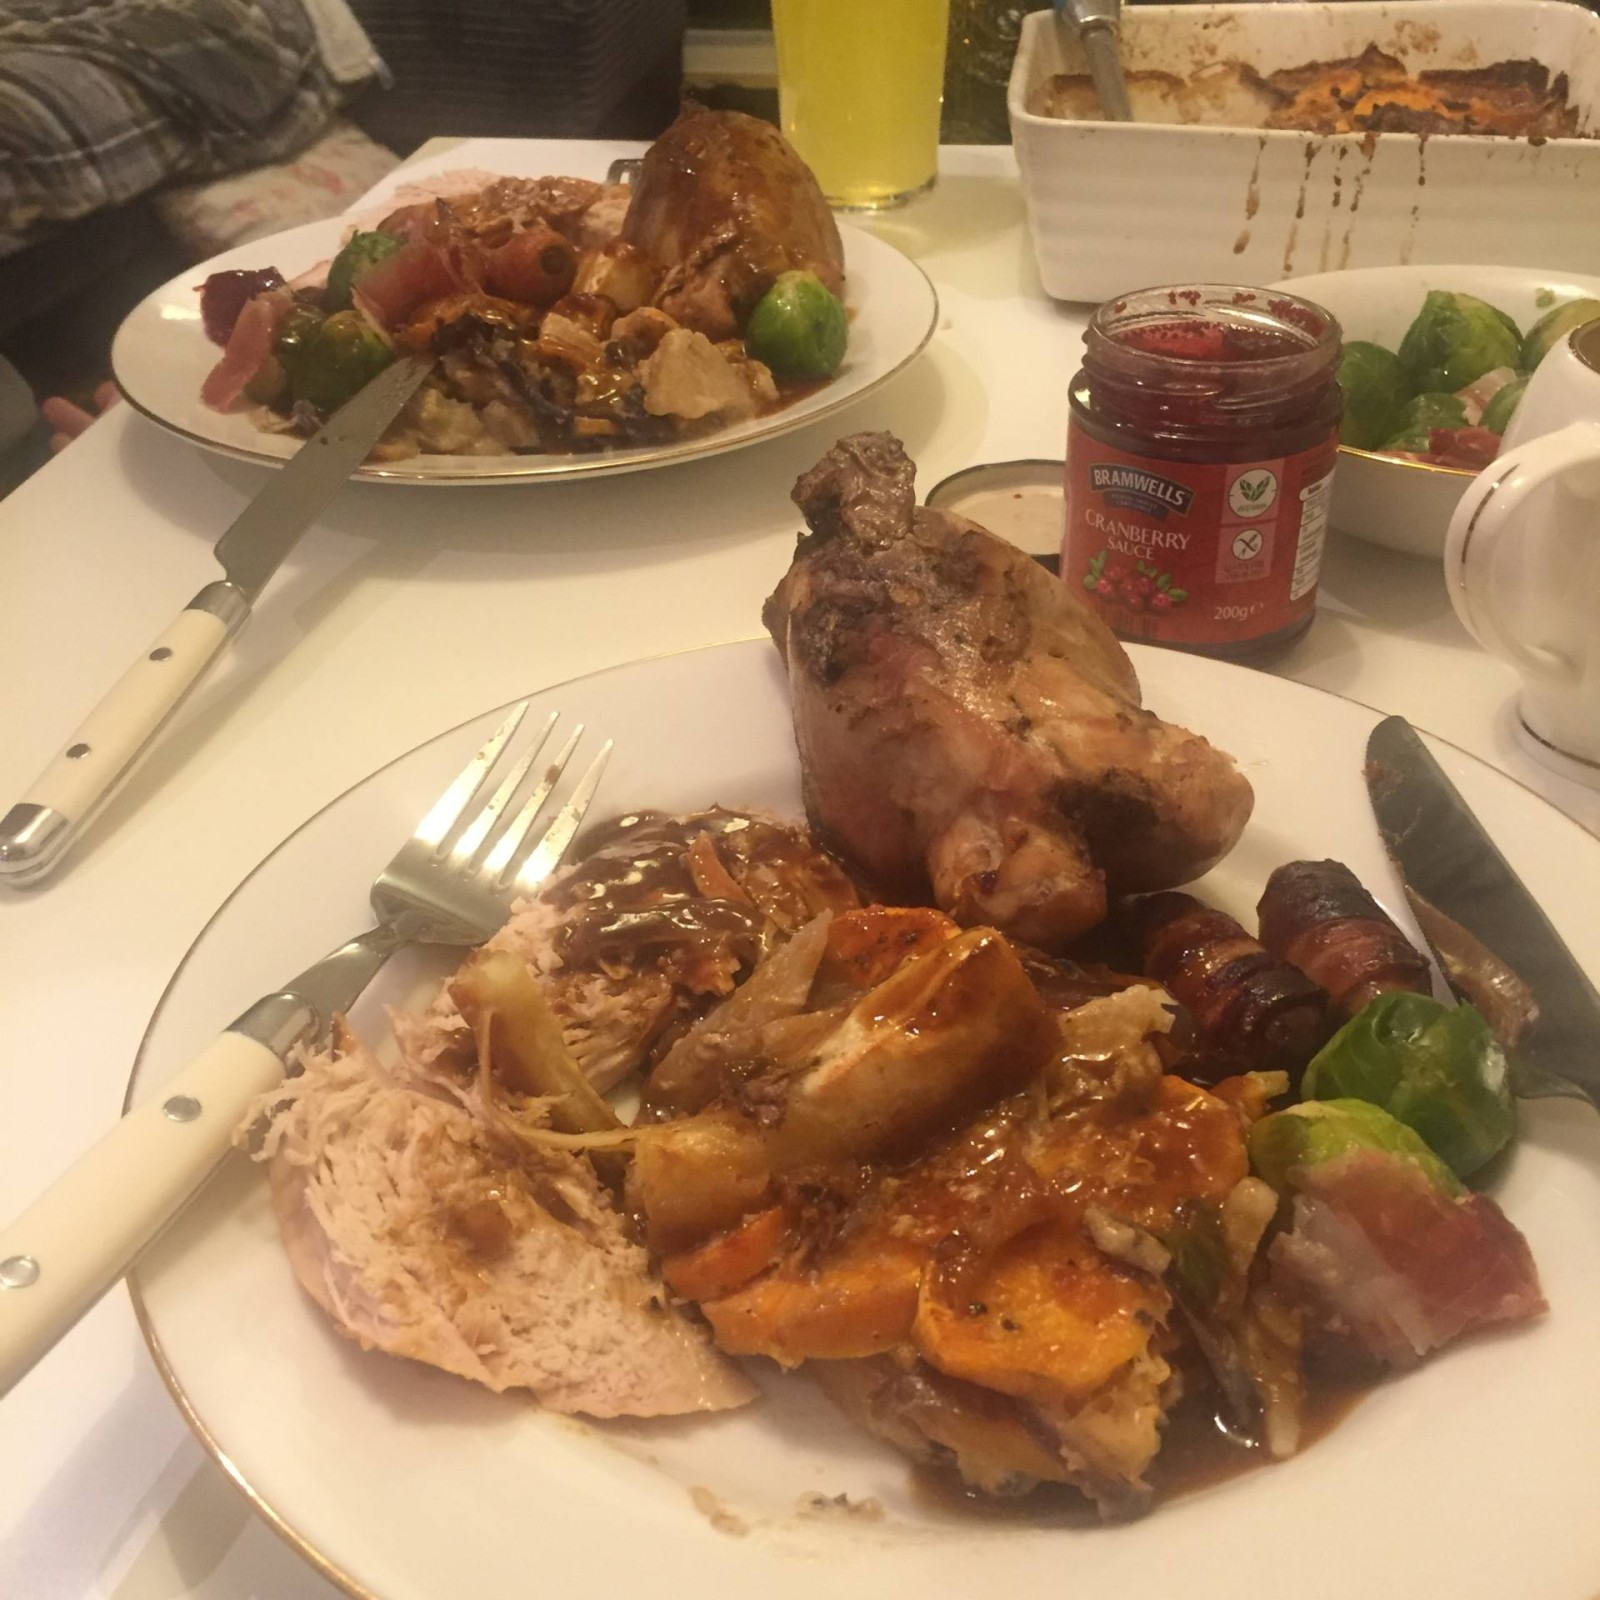 Aldi Christmas Meal